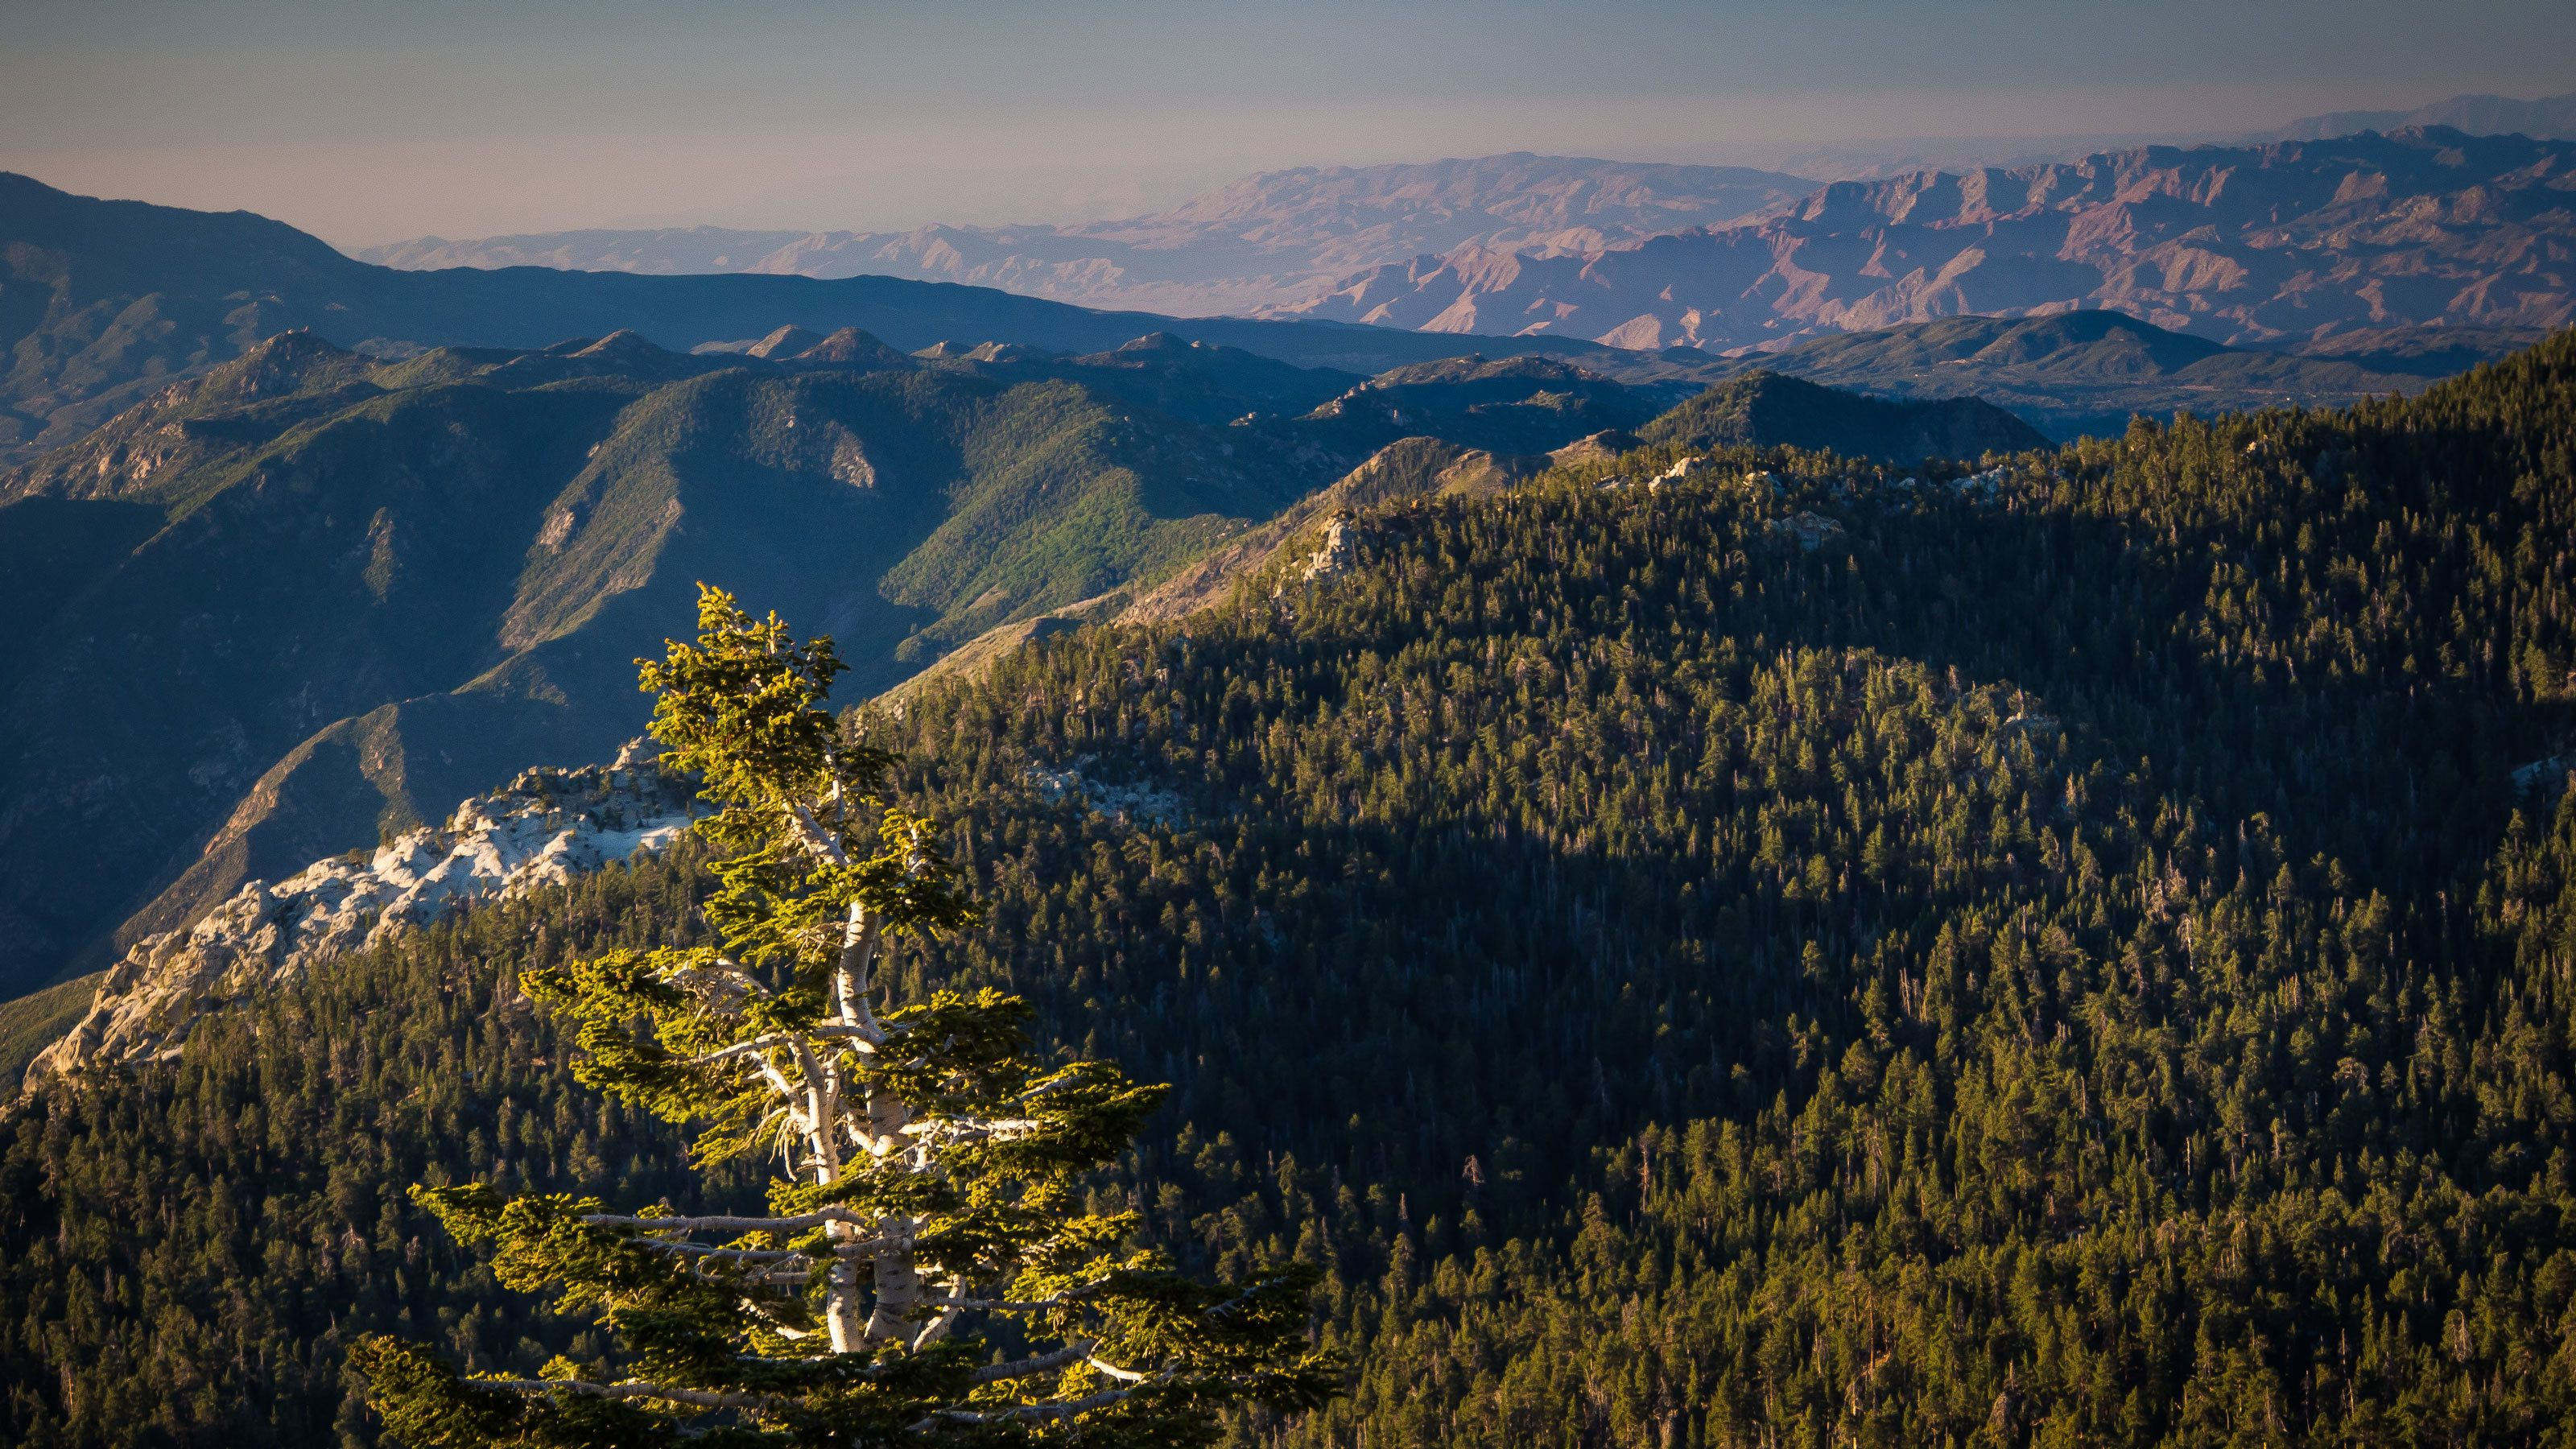 Aerial view of the forest and mountains of Mount San Jacinto State Park in California